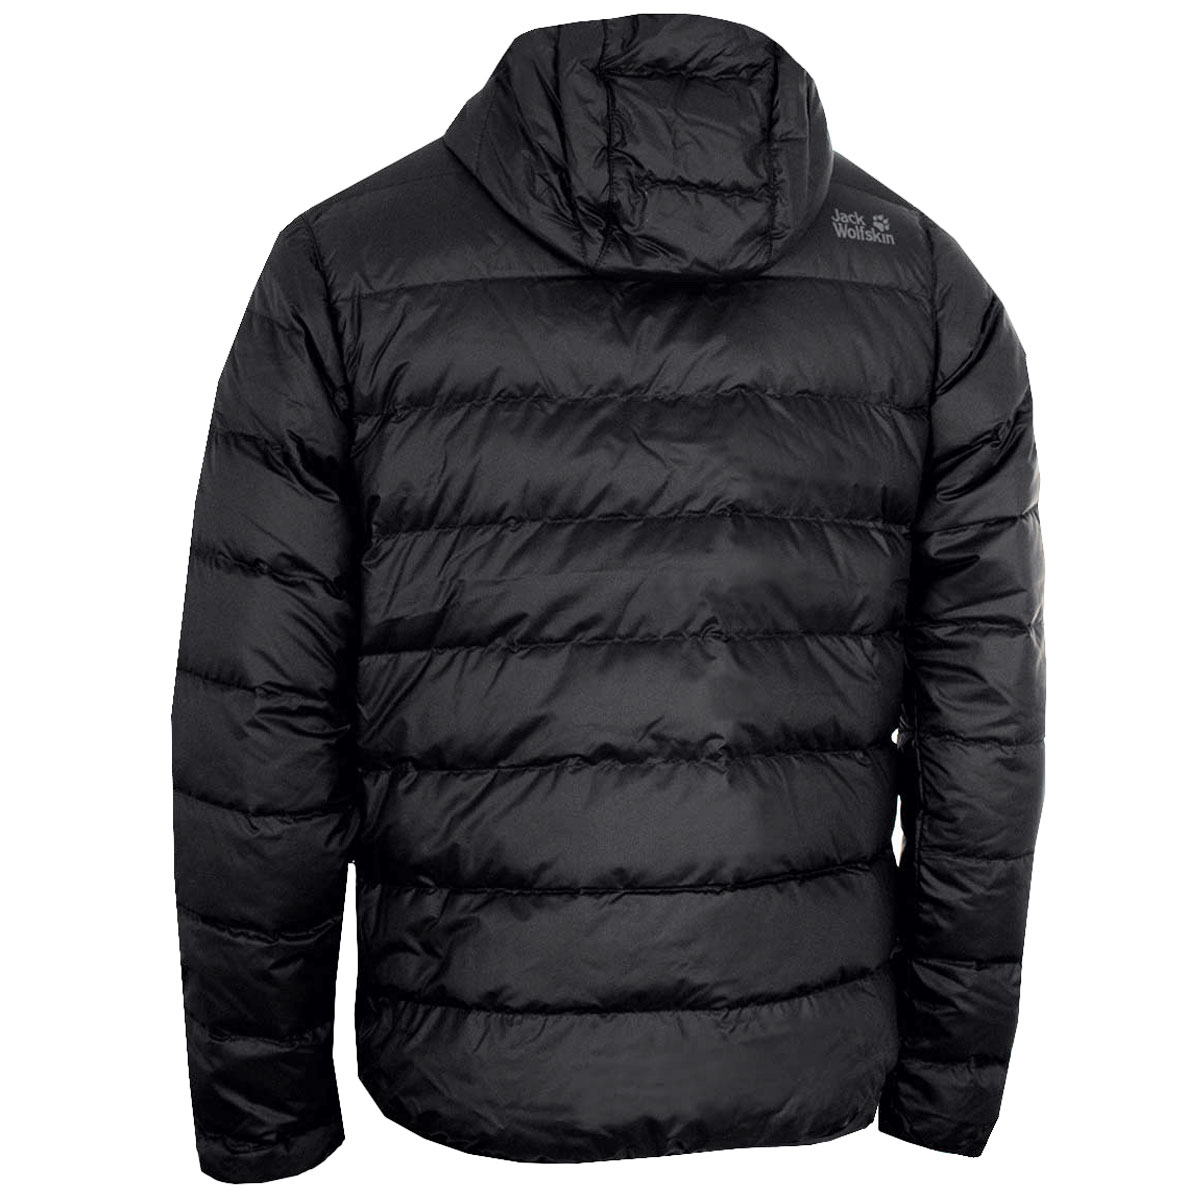 526c09e8206 Jack Wolfskin Mens Helium Down Insulated Winter Hooded Jacket Coat ...